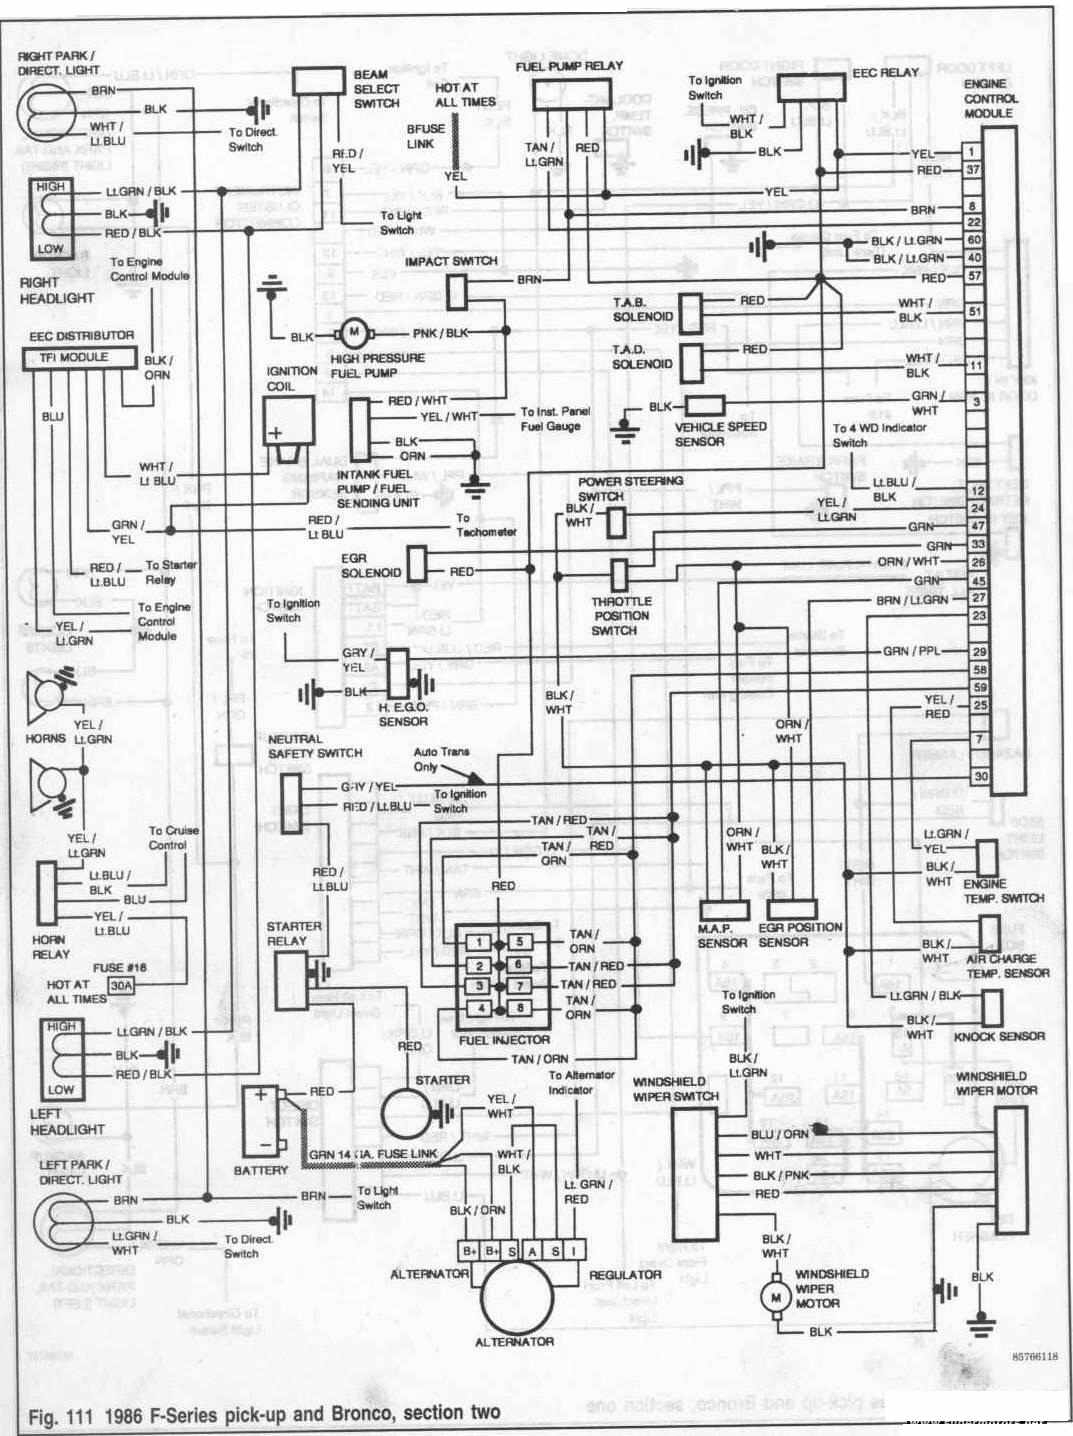 BG_5873] 1986 Ford Thunderbird Wiring Diagram Download DiagramRatag Barba Nowa Greas Benkeme Mohammedshrine Librar Wiring 101